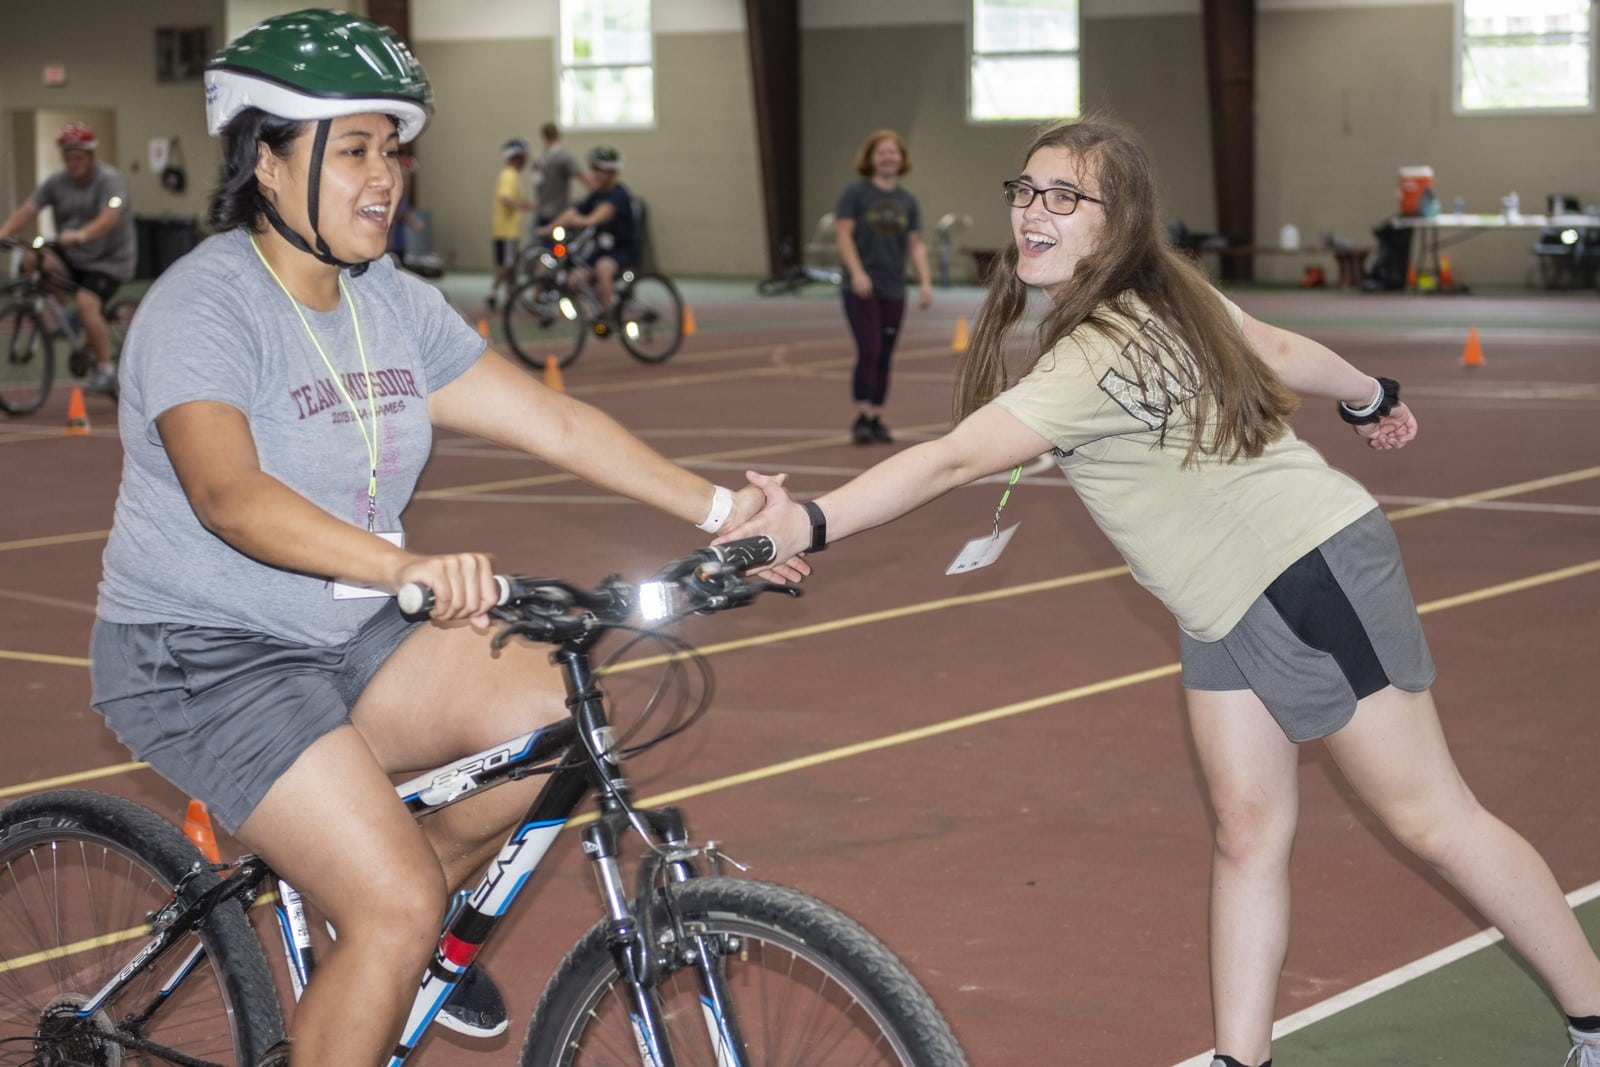 An athlete rides a bike while a volunteer gives them a high-five